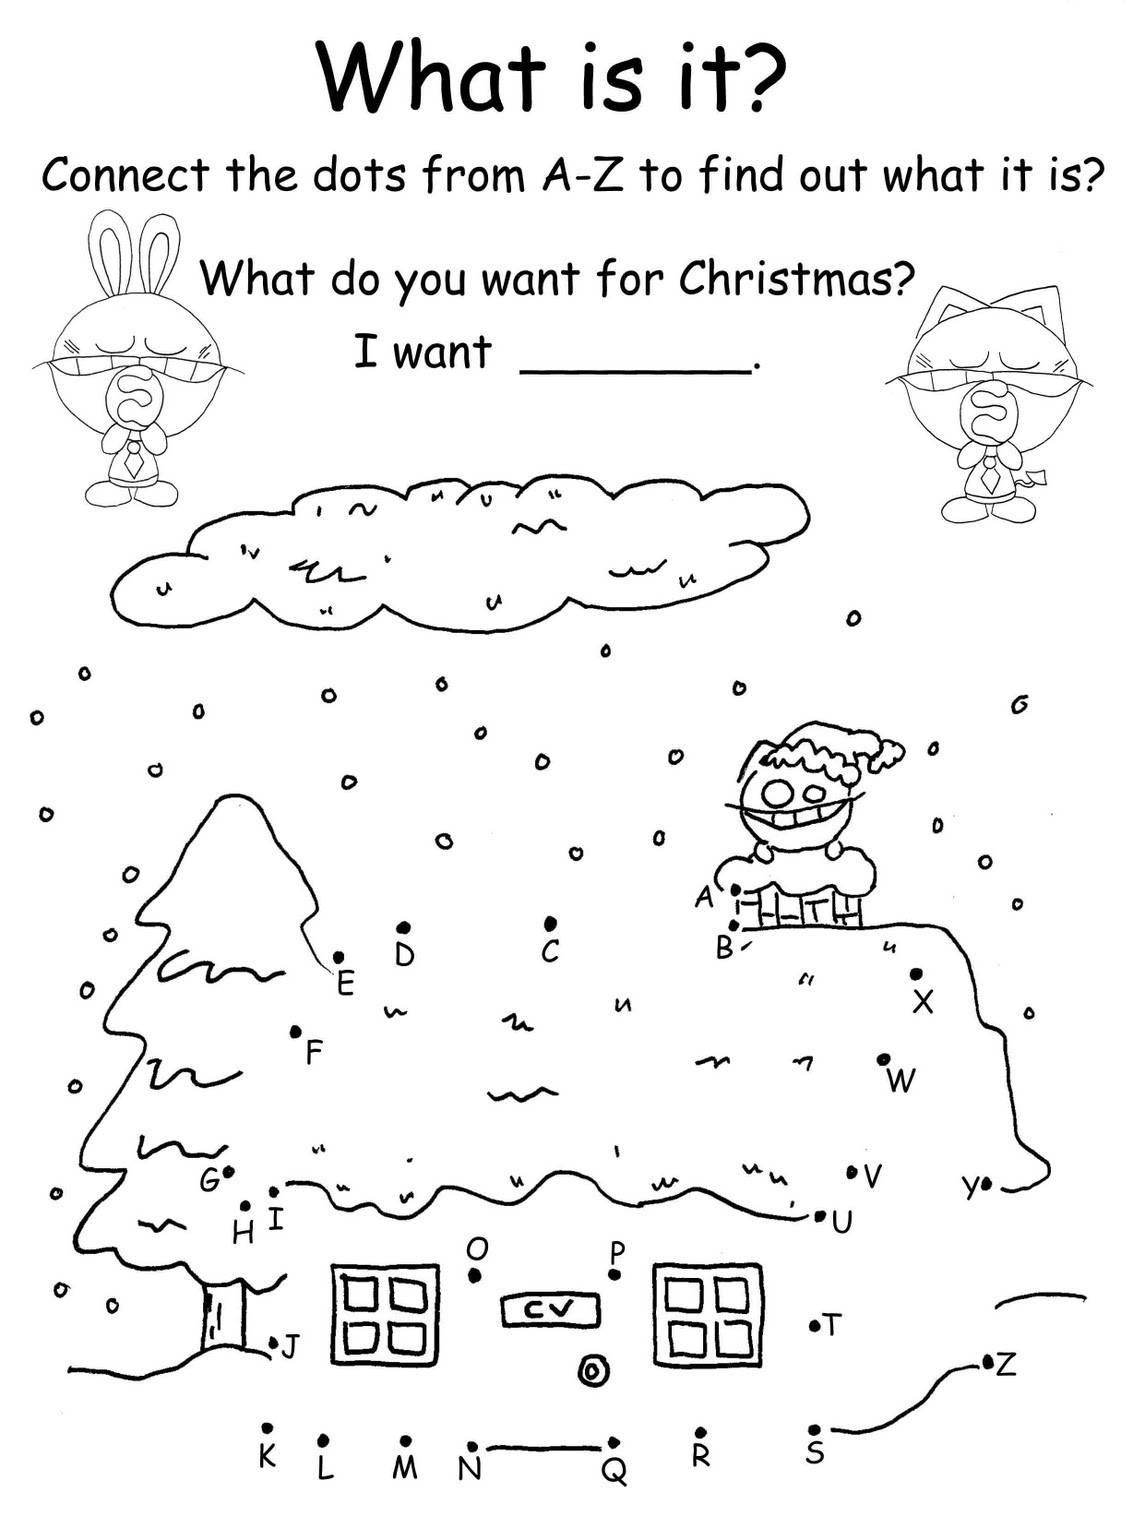 Christmas Themed Mazes, Coloring Pages & Word Search Fun ...